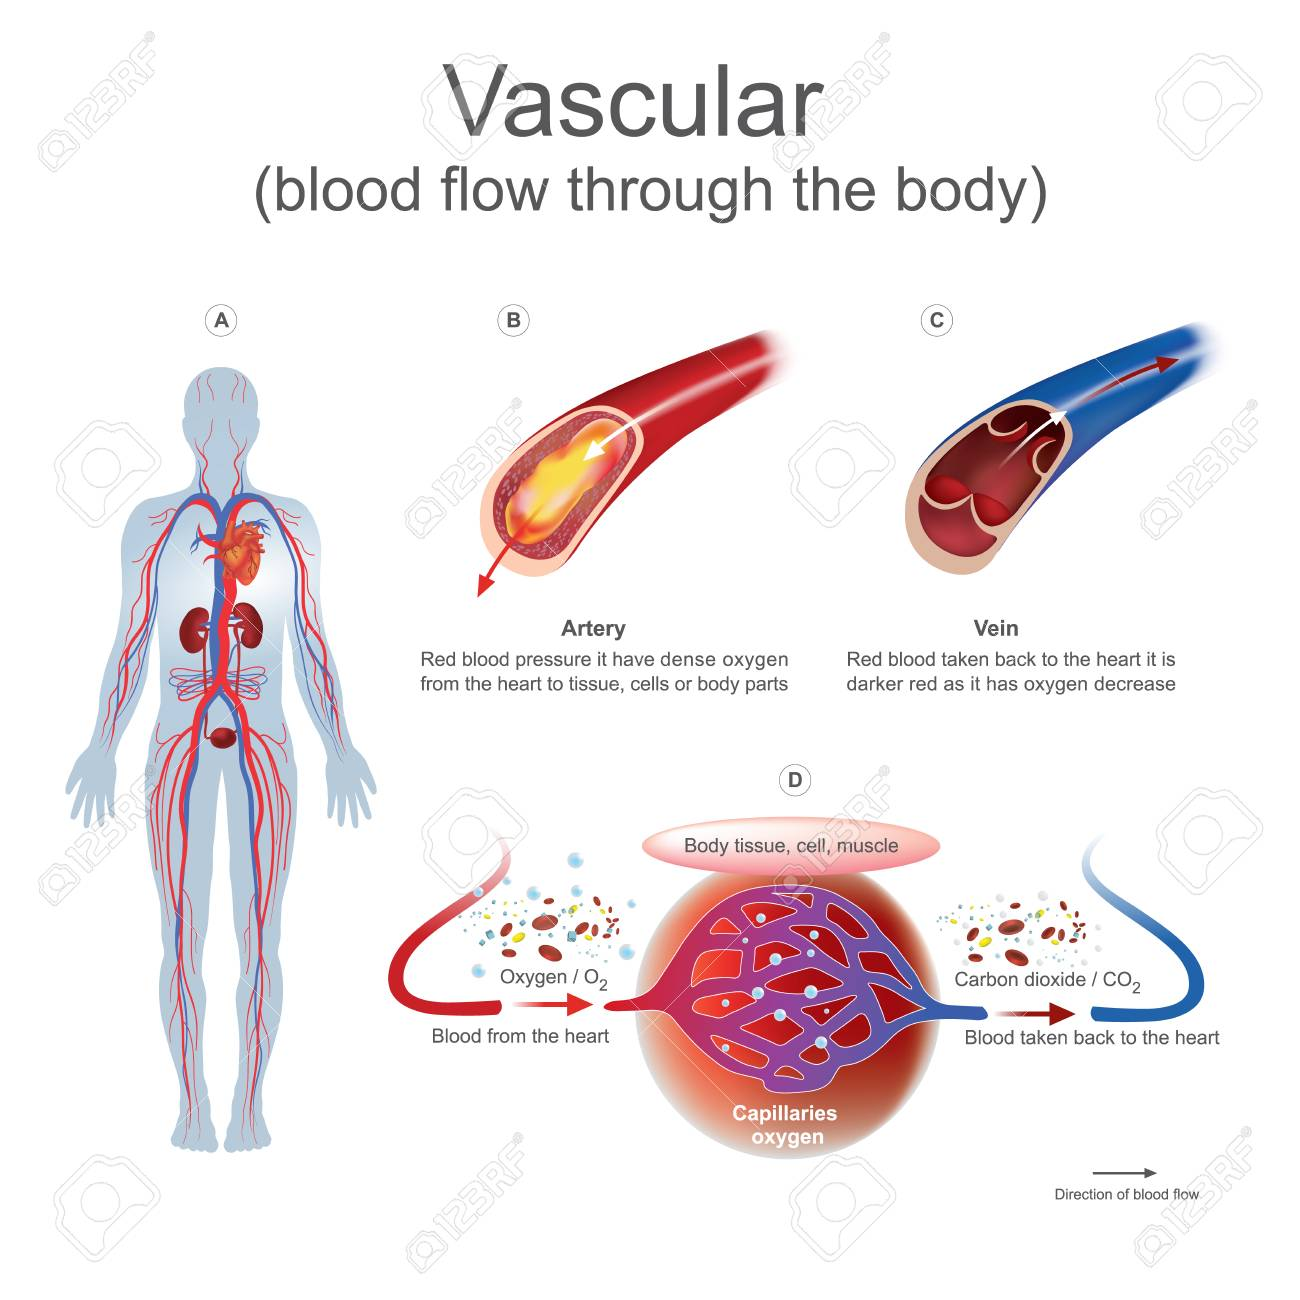 hight resolution of red blood pressure it have dense oxygen from the heart to tissue cells or body parts red blood taken back to the heart it is darker red as it has oxygen